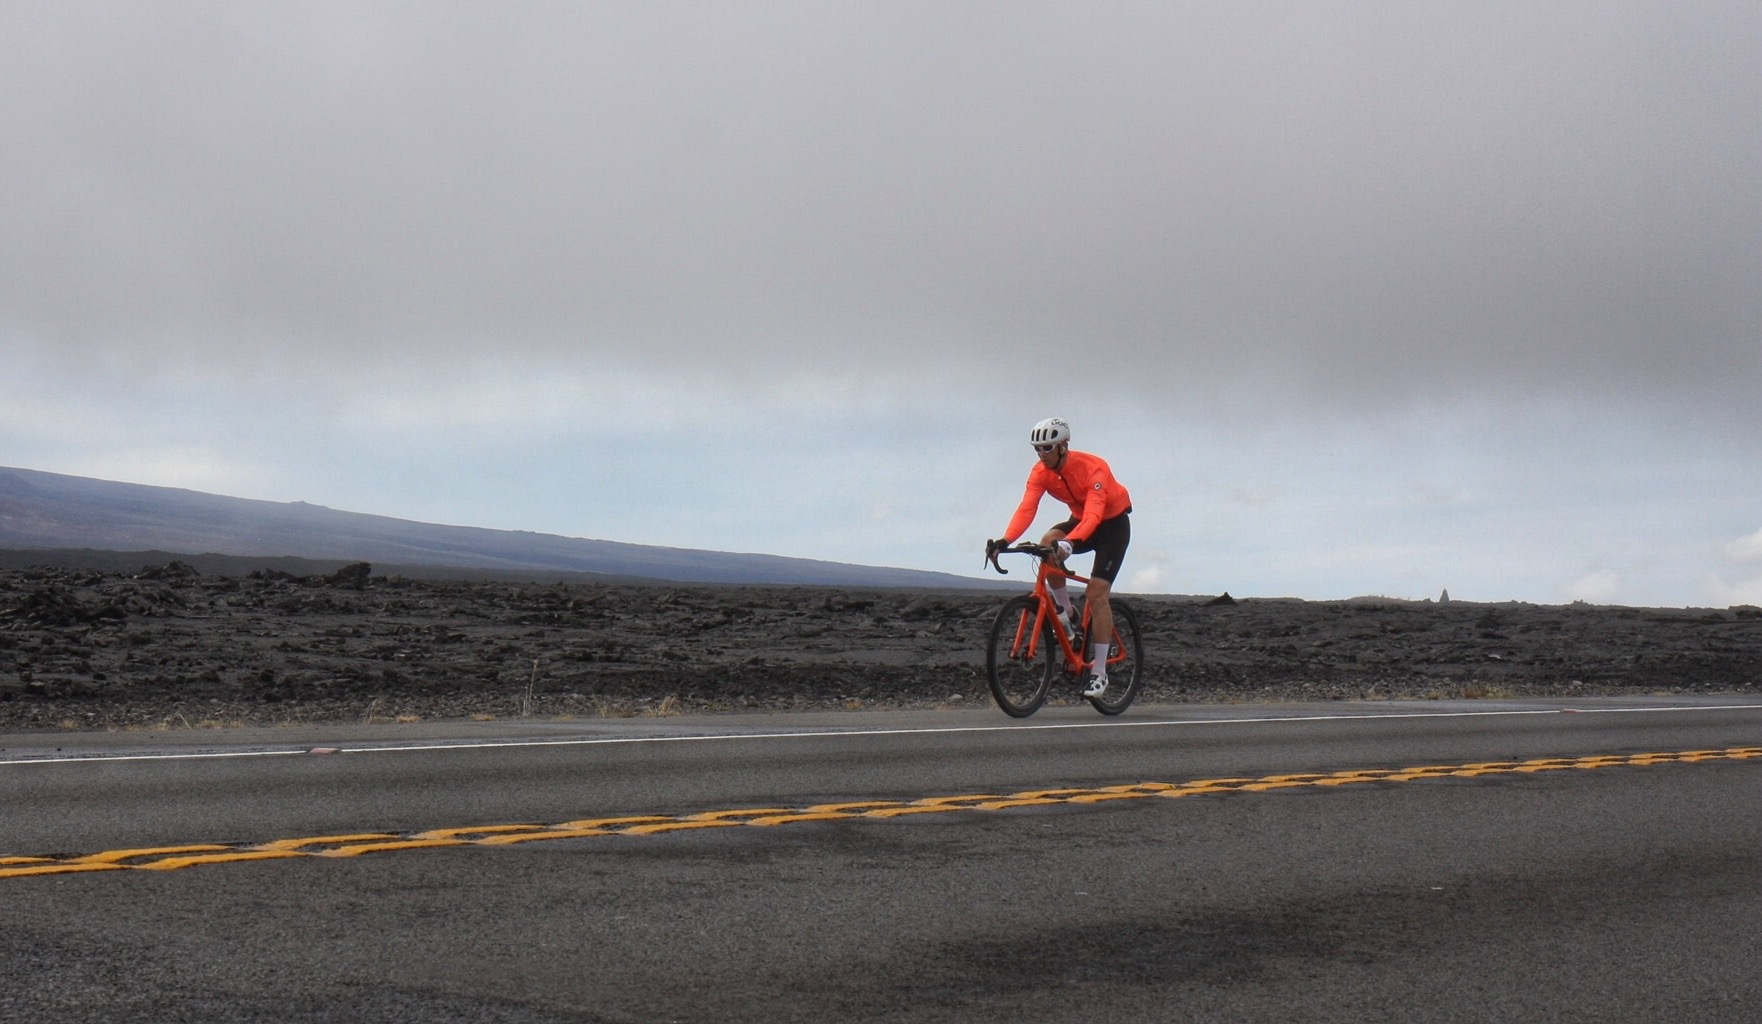 The Saddle Road, at 2,000m. In Europe, we'd call this a col, but we probably wouldn't be riding through lava flows!